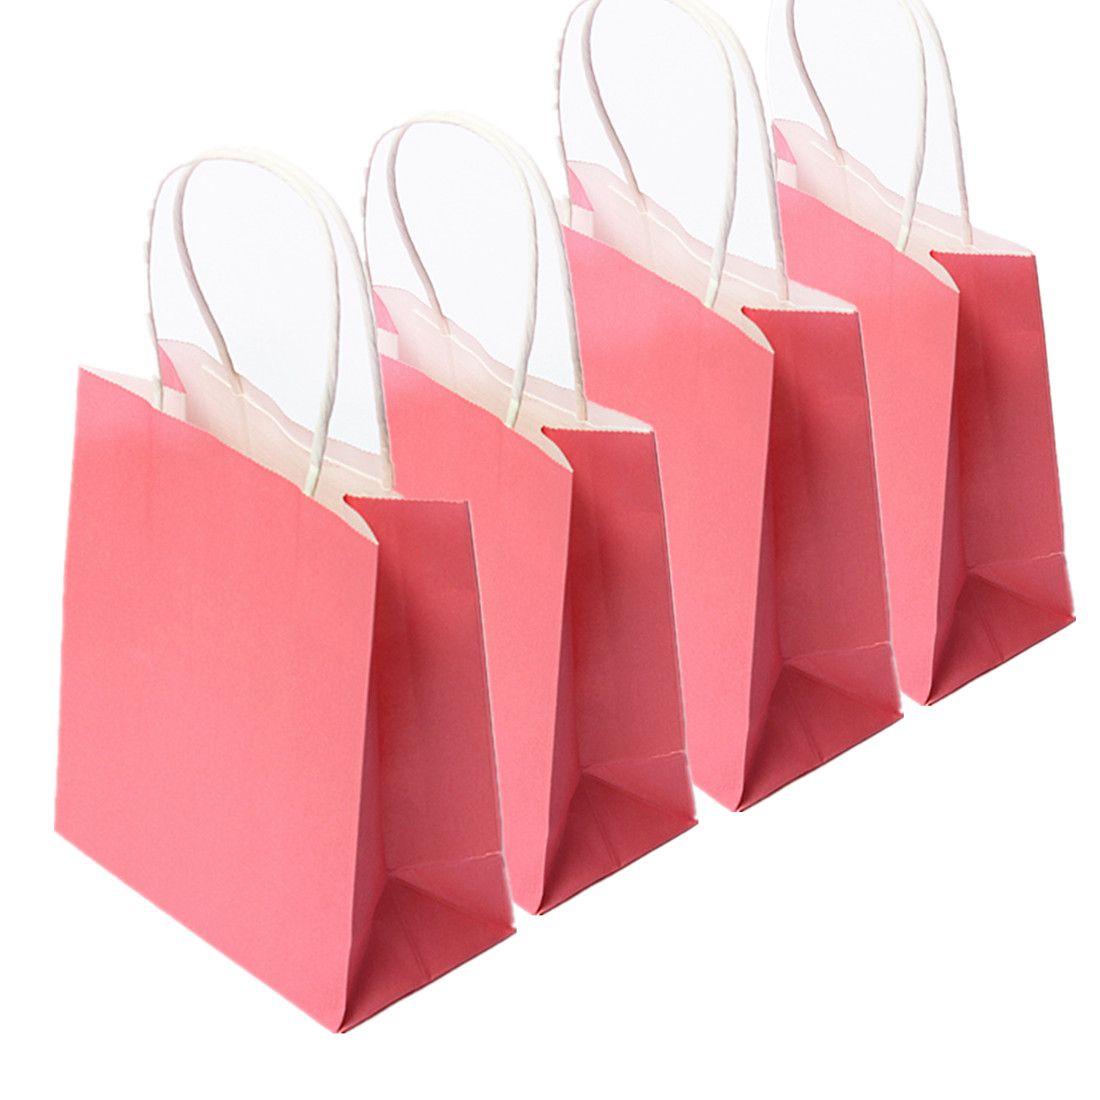 Pay to do paper in gift bag